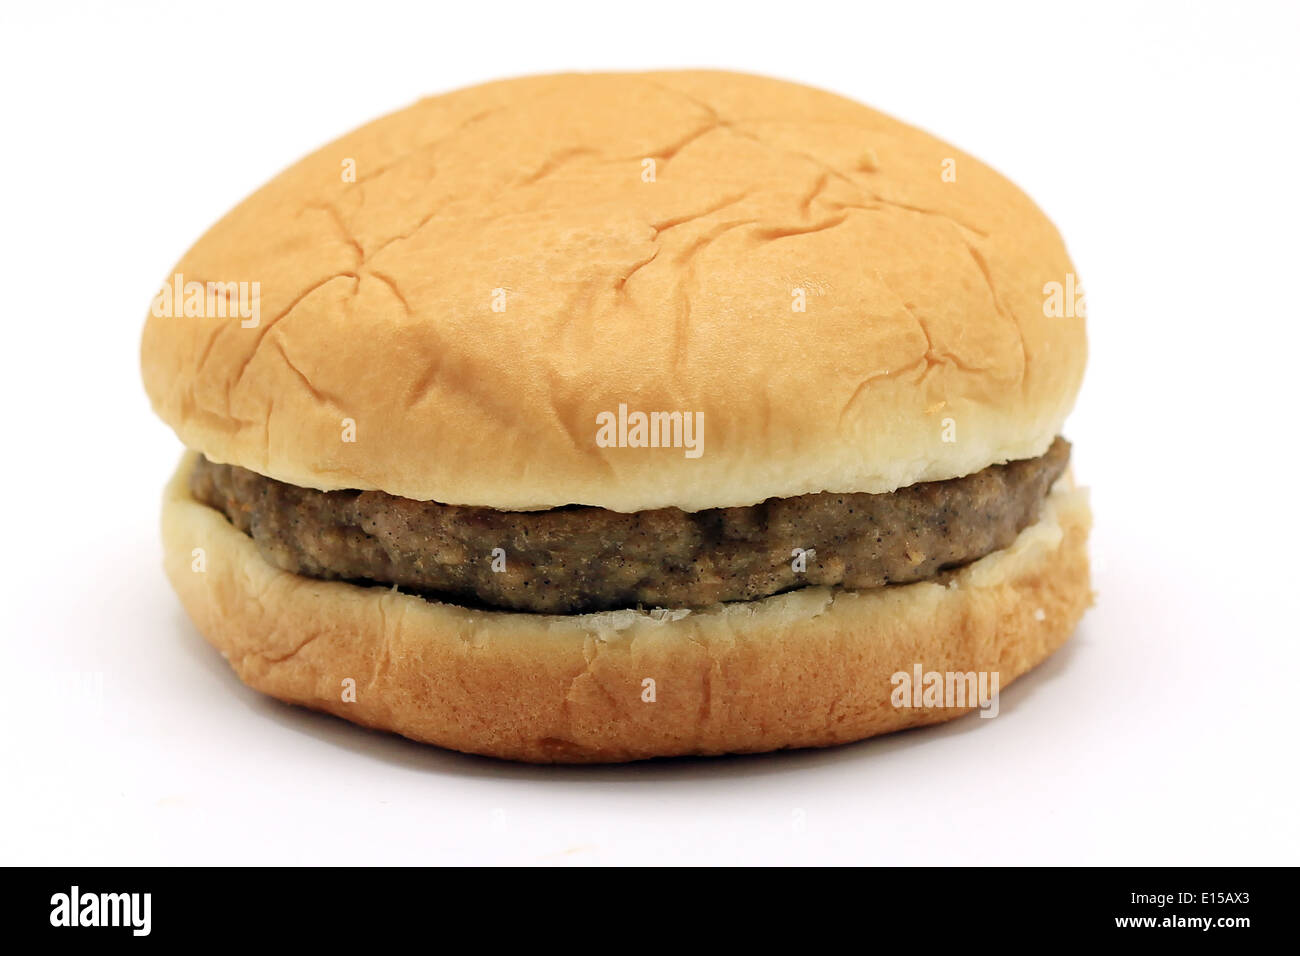 delicious hamburger american fastfood isolated on white background - Stock Image